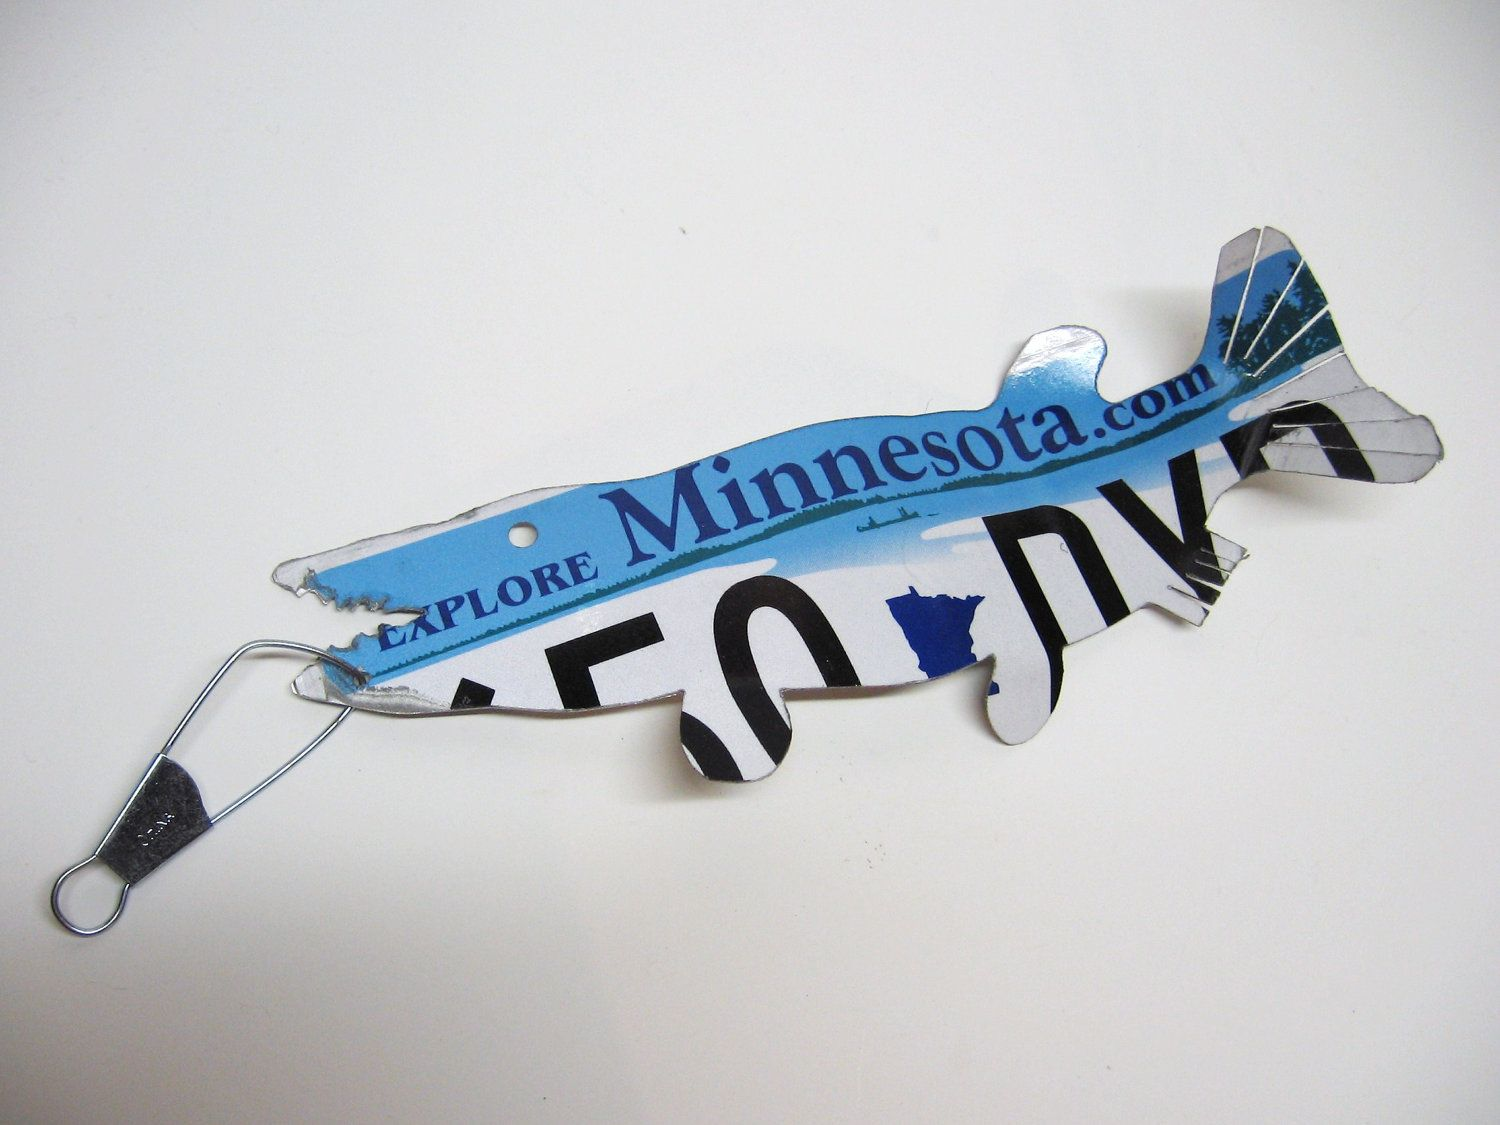 Minnesota Muskie Fish Recycled License Plate Art License Plate Art Small Projects Ideas Minnesota